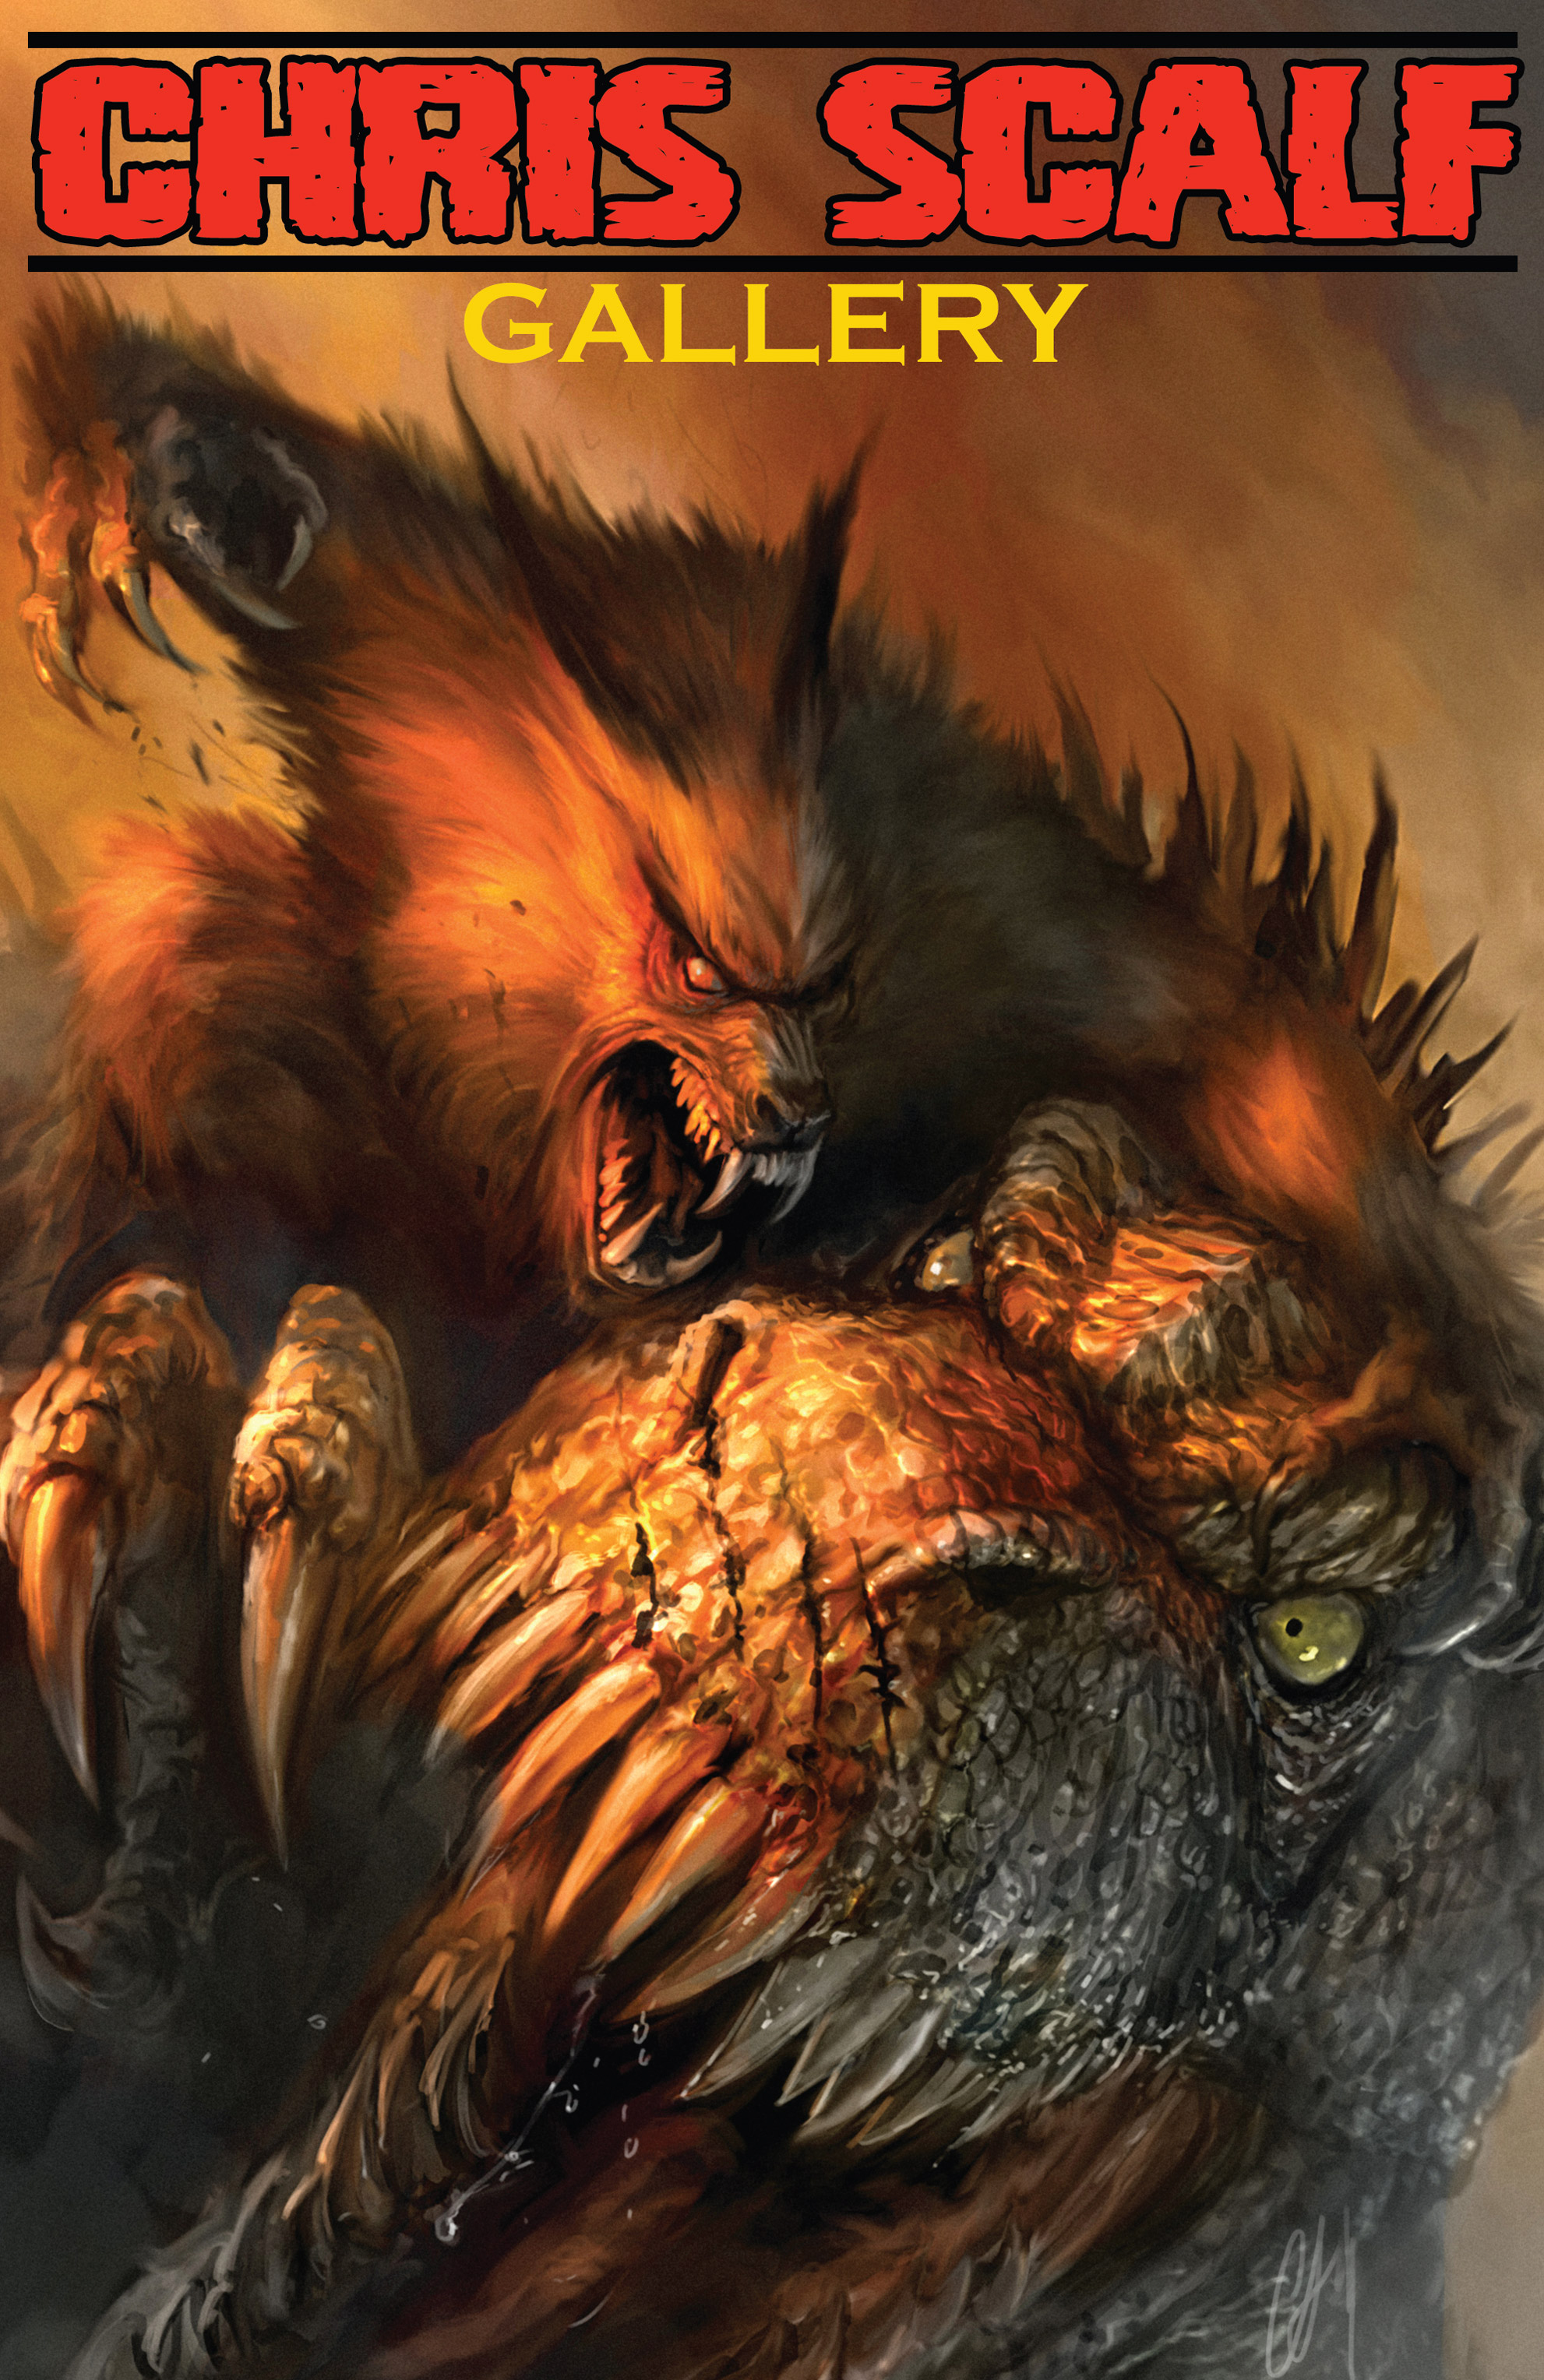 Read online American Mythology Dark: Werewolves vs Dinosaurs comic -  Issue #2 - 27